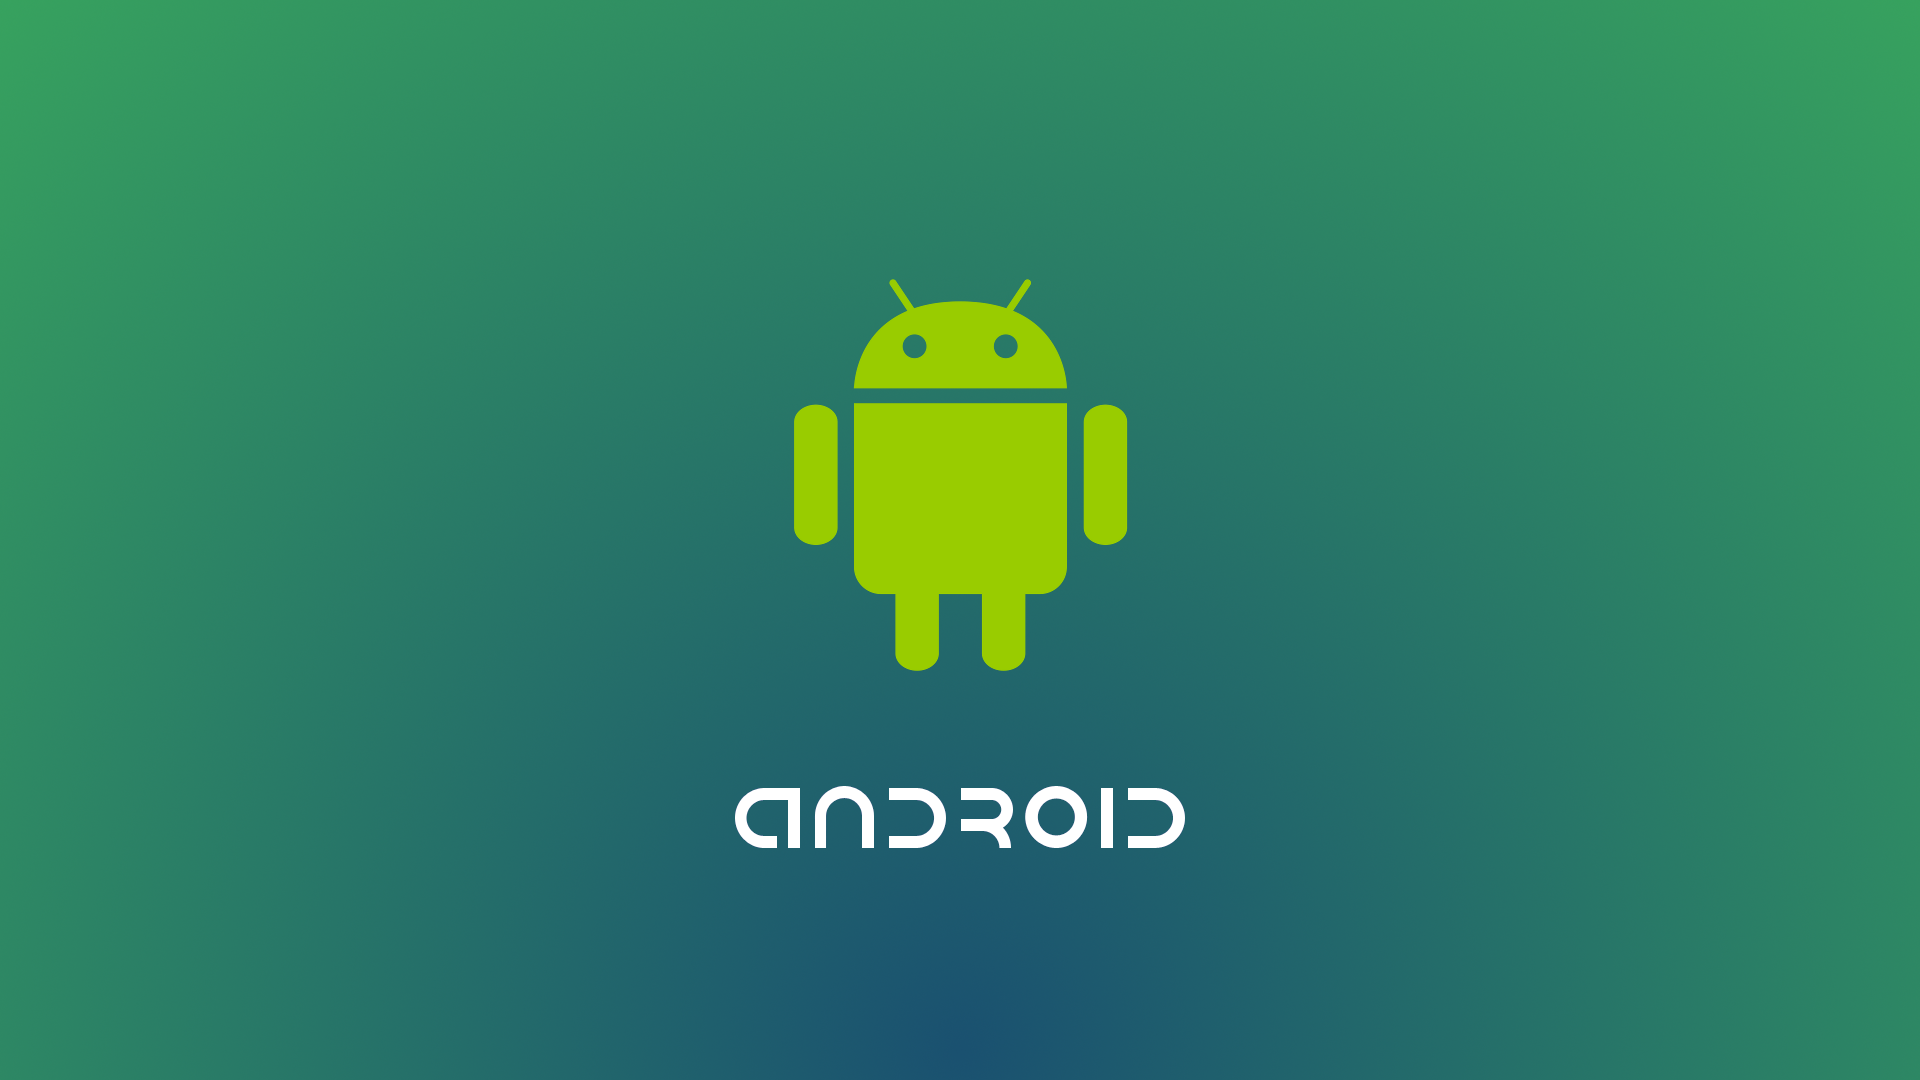 An image of an Android logo